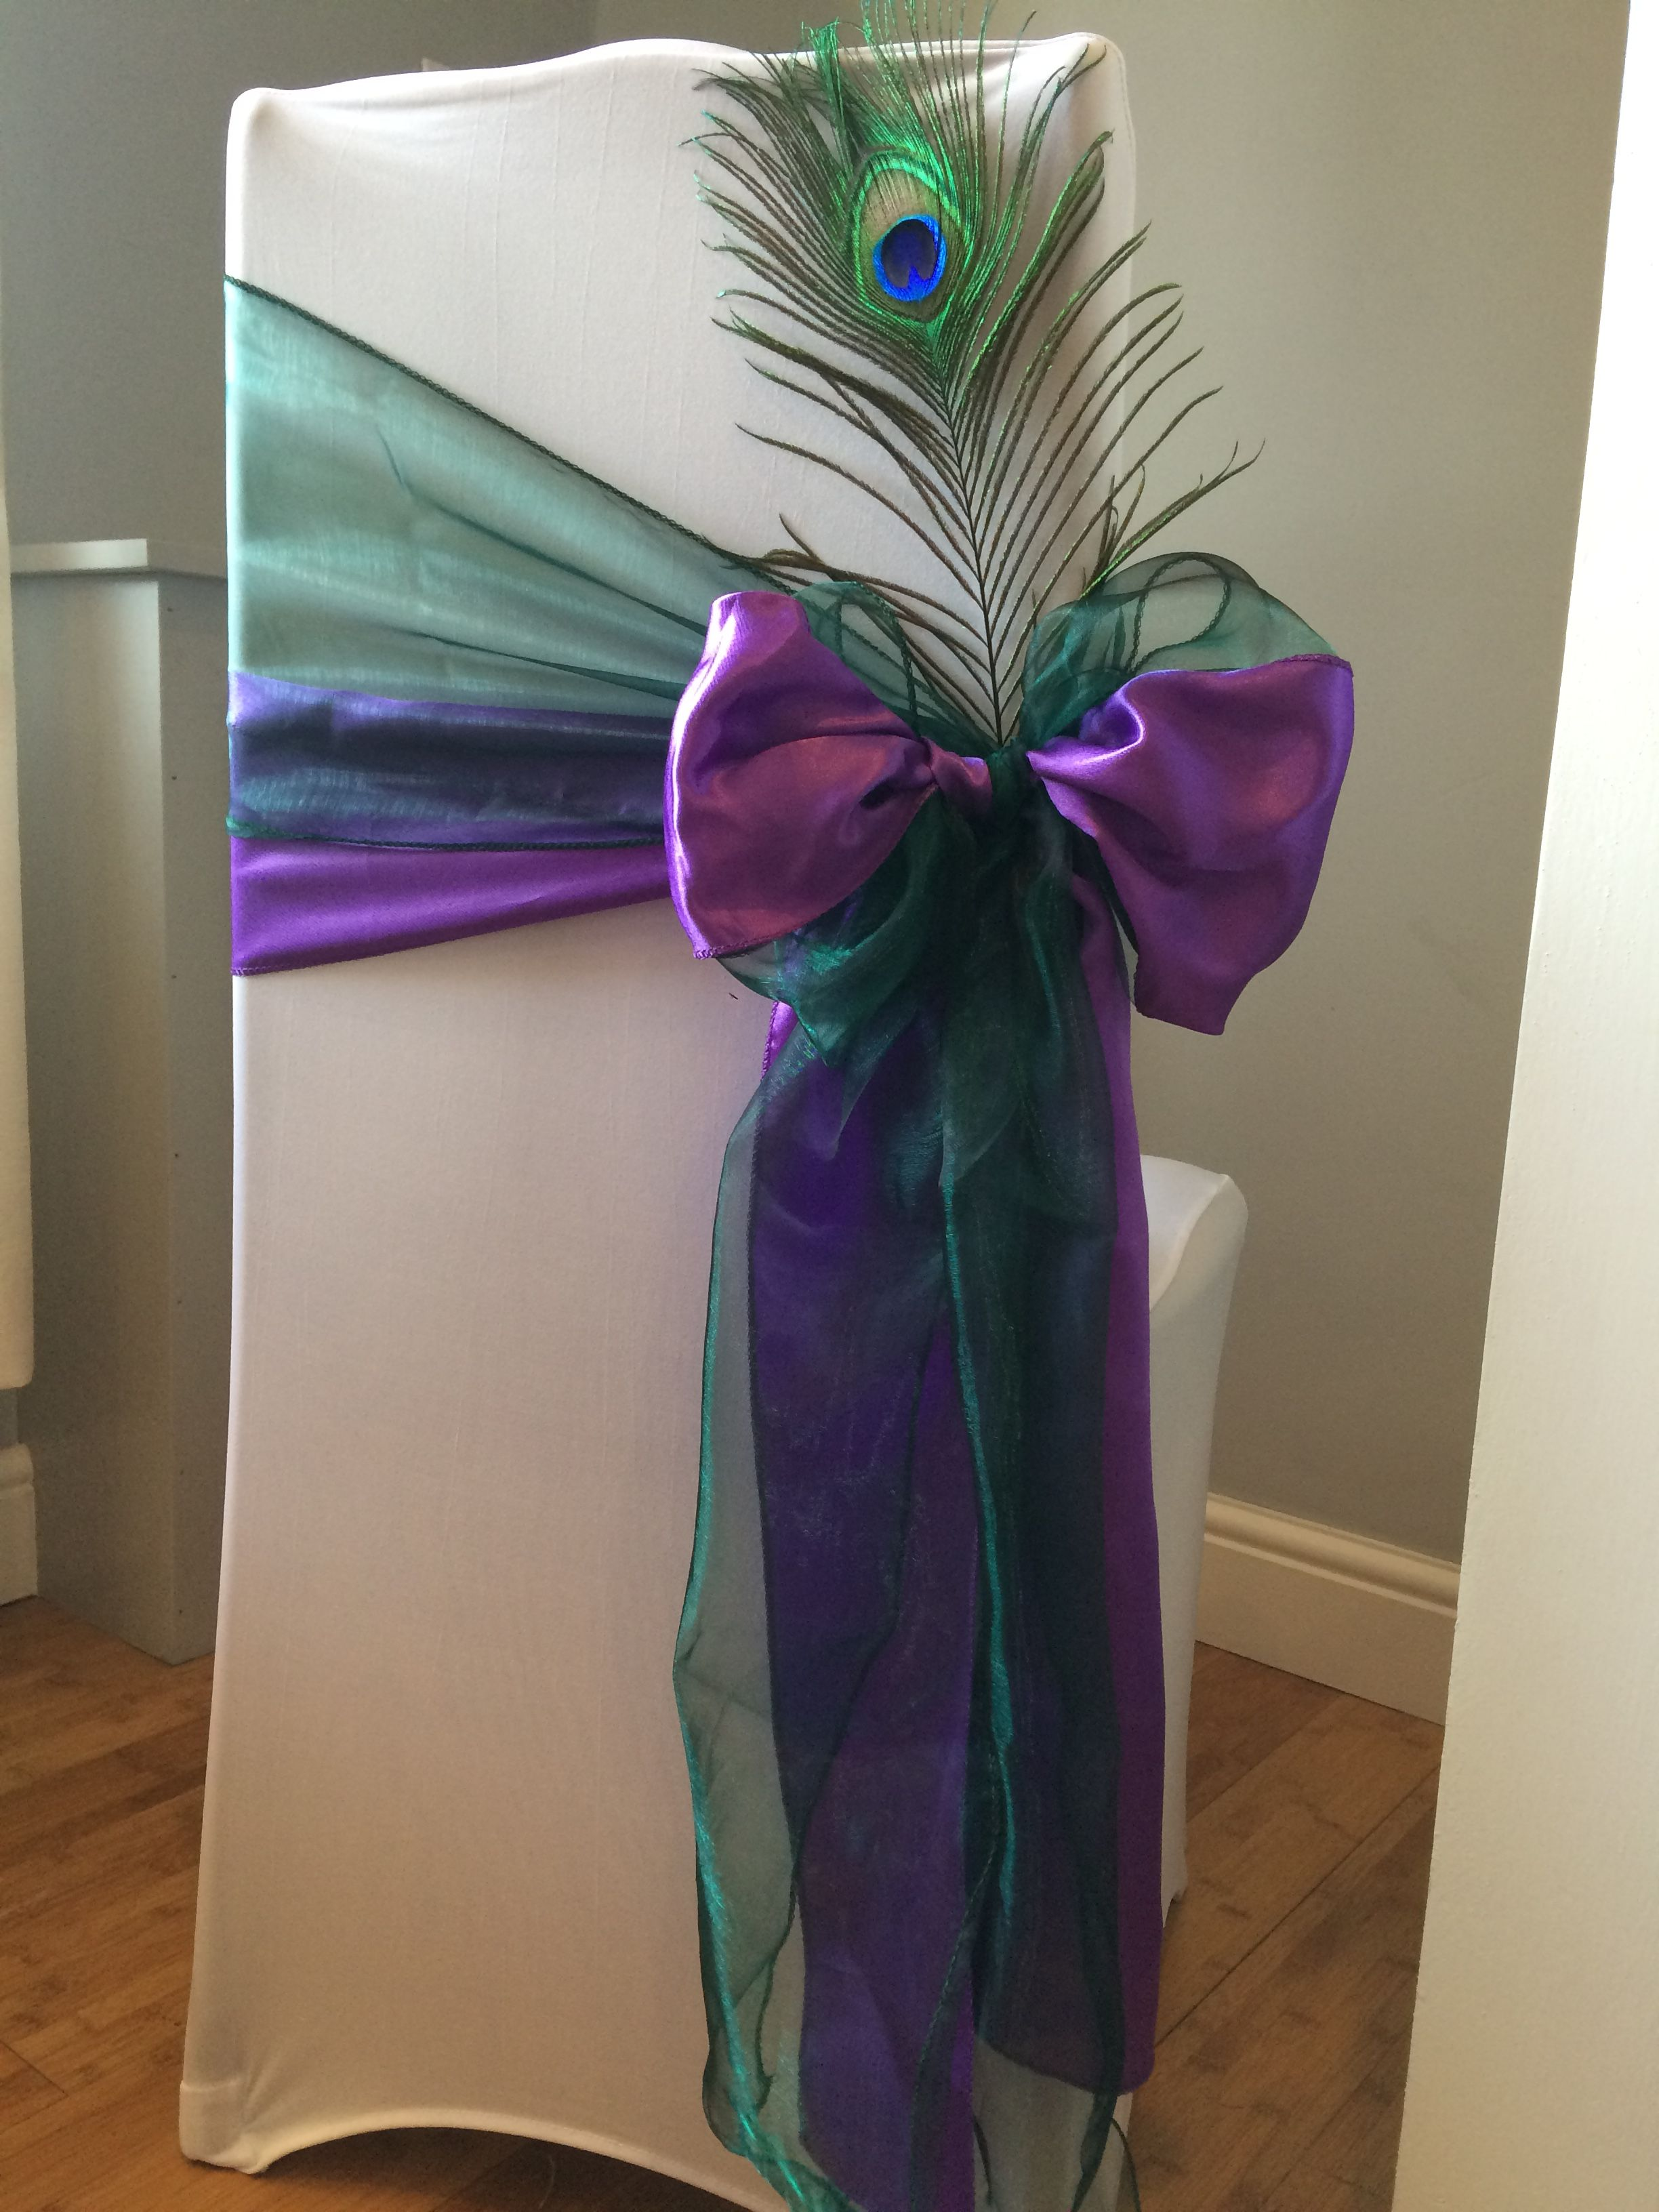 Teal Chair Covers For Wedding Student Desk Combo Peacock Theme Cover Weddings In Wales By